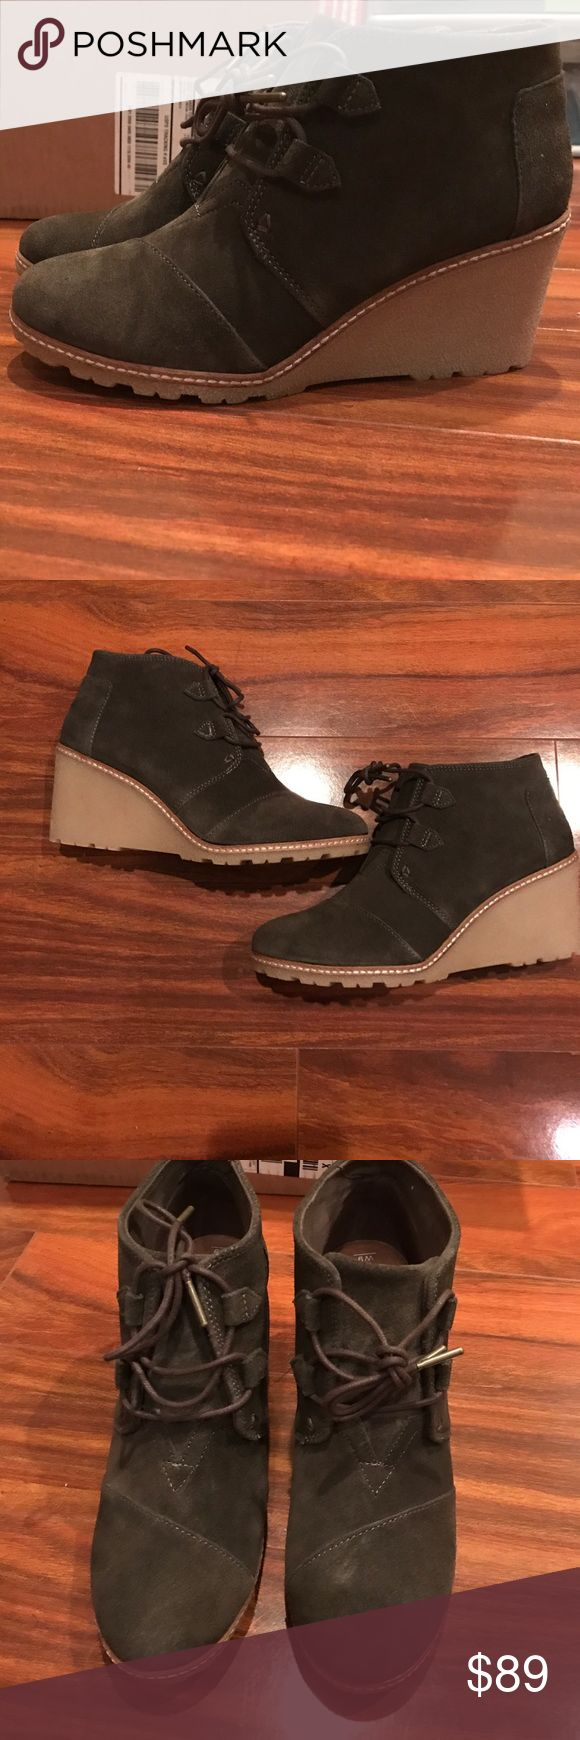 Toms Desert Wedge Brand new, never worn. Tarmac olive green suede wedge. TOMS Shoes Wedges